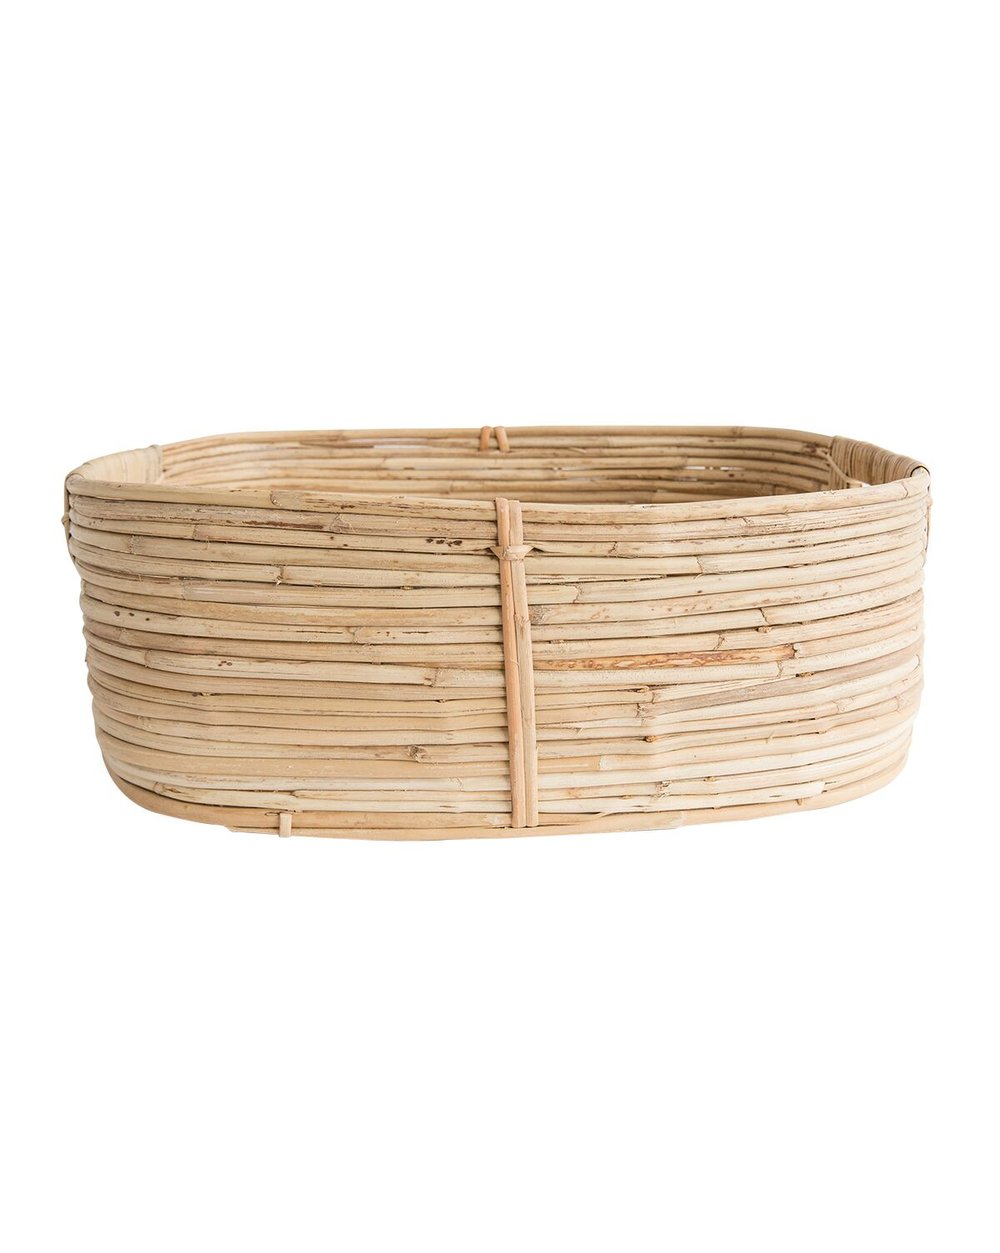 Cane Rattan Baskets 3_preview.jpg